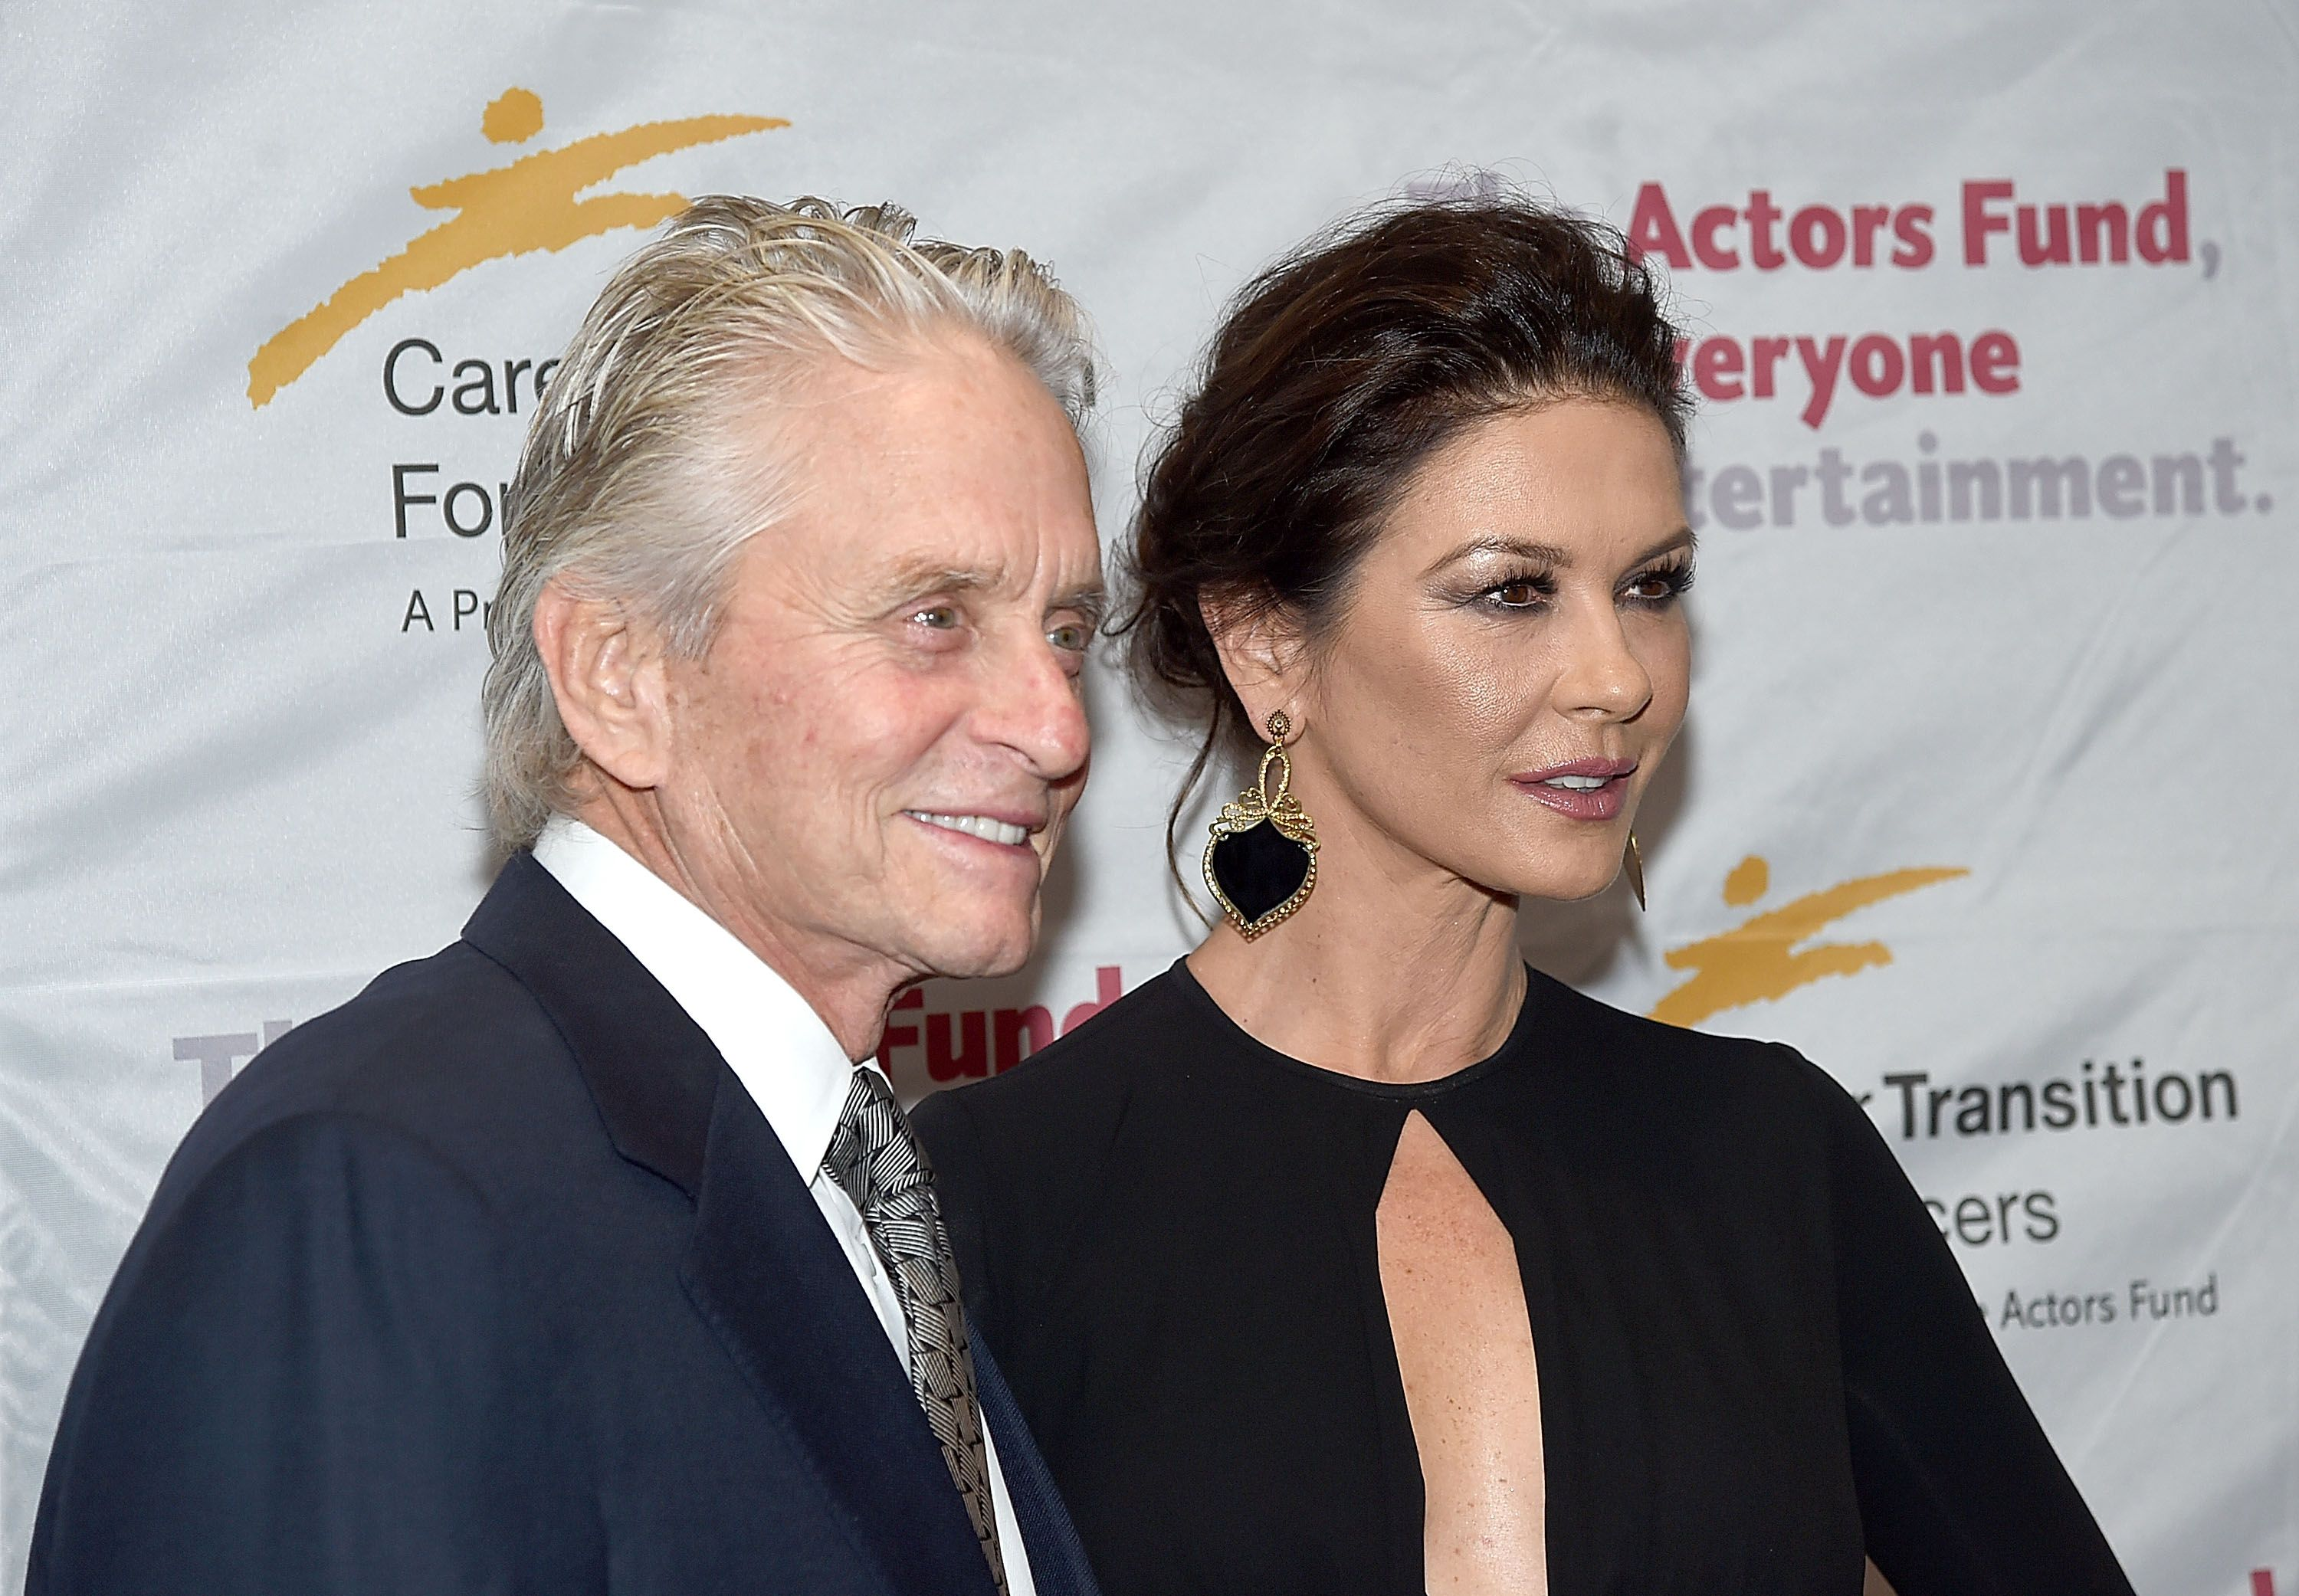 Michael Douglas and Catherine Zeta-Jones at The Actor's Fund Career Transition For Dancers 2017 Jubilee Gala at Marriott Marquis Hotel on November 1, 2017 | Photo: Getty Images